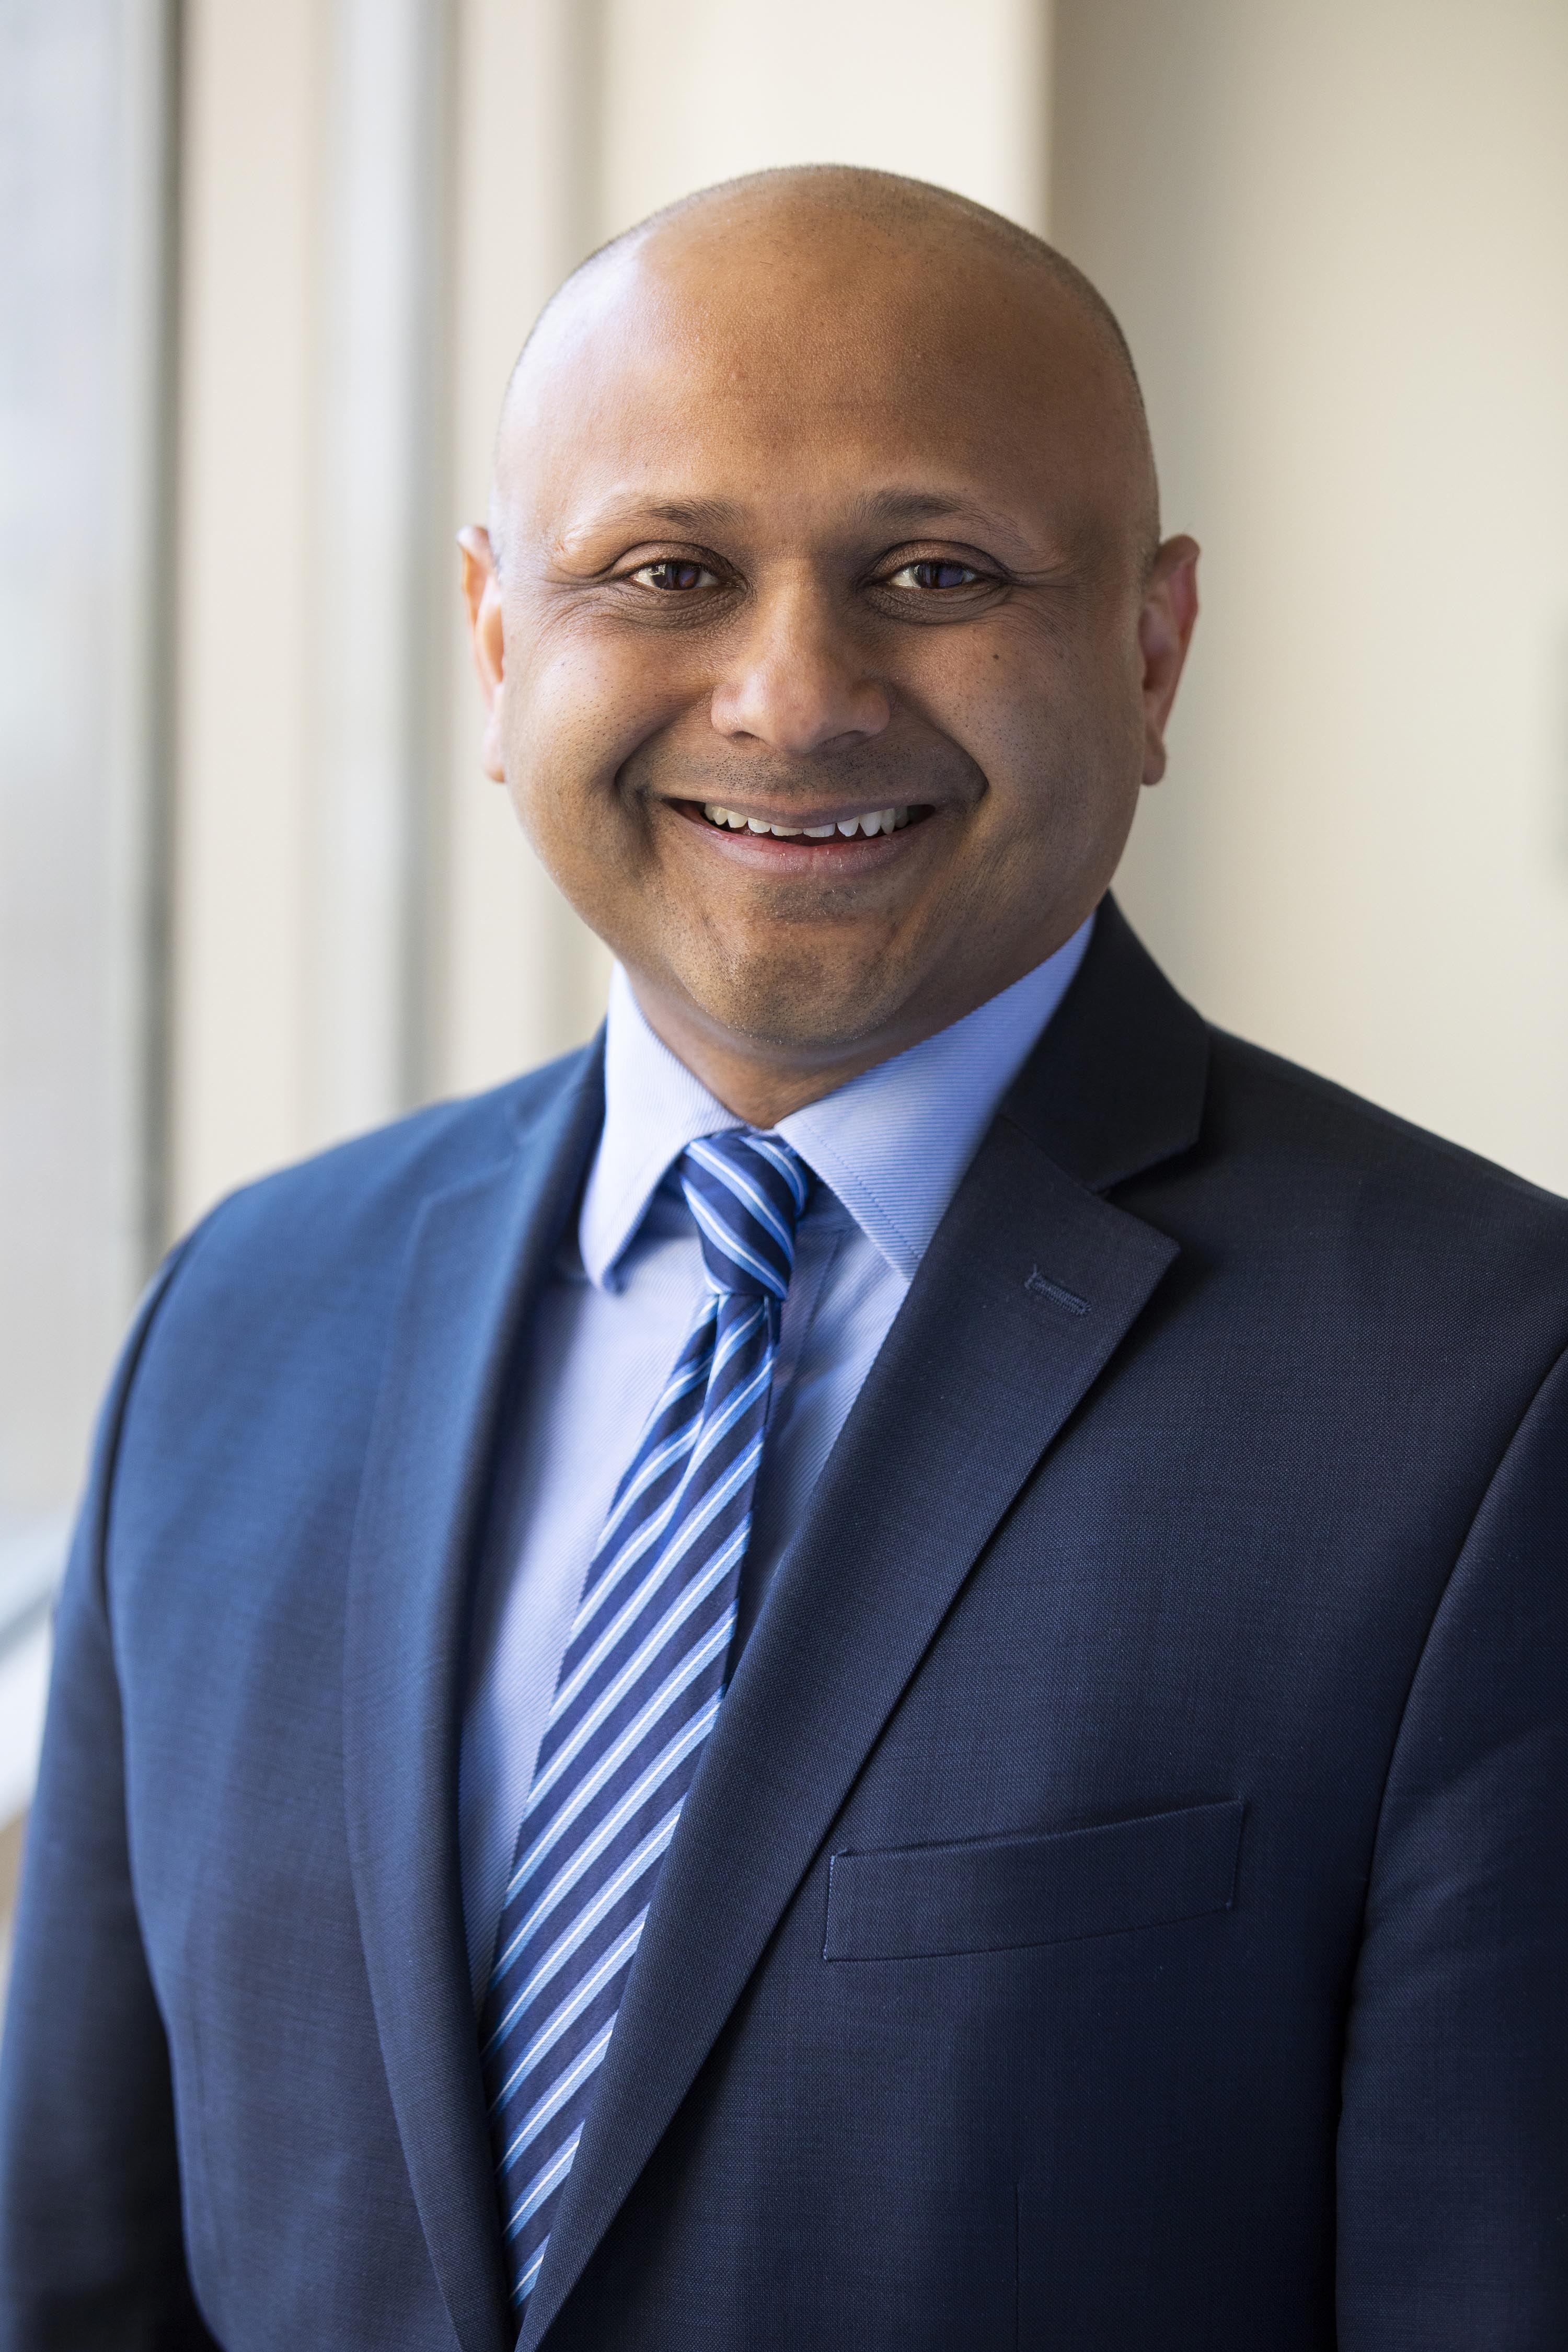 Dr. Harsh K. Trivedi headshot